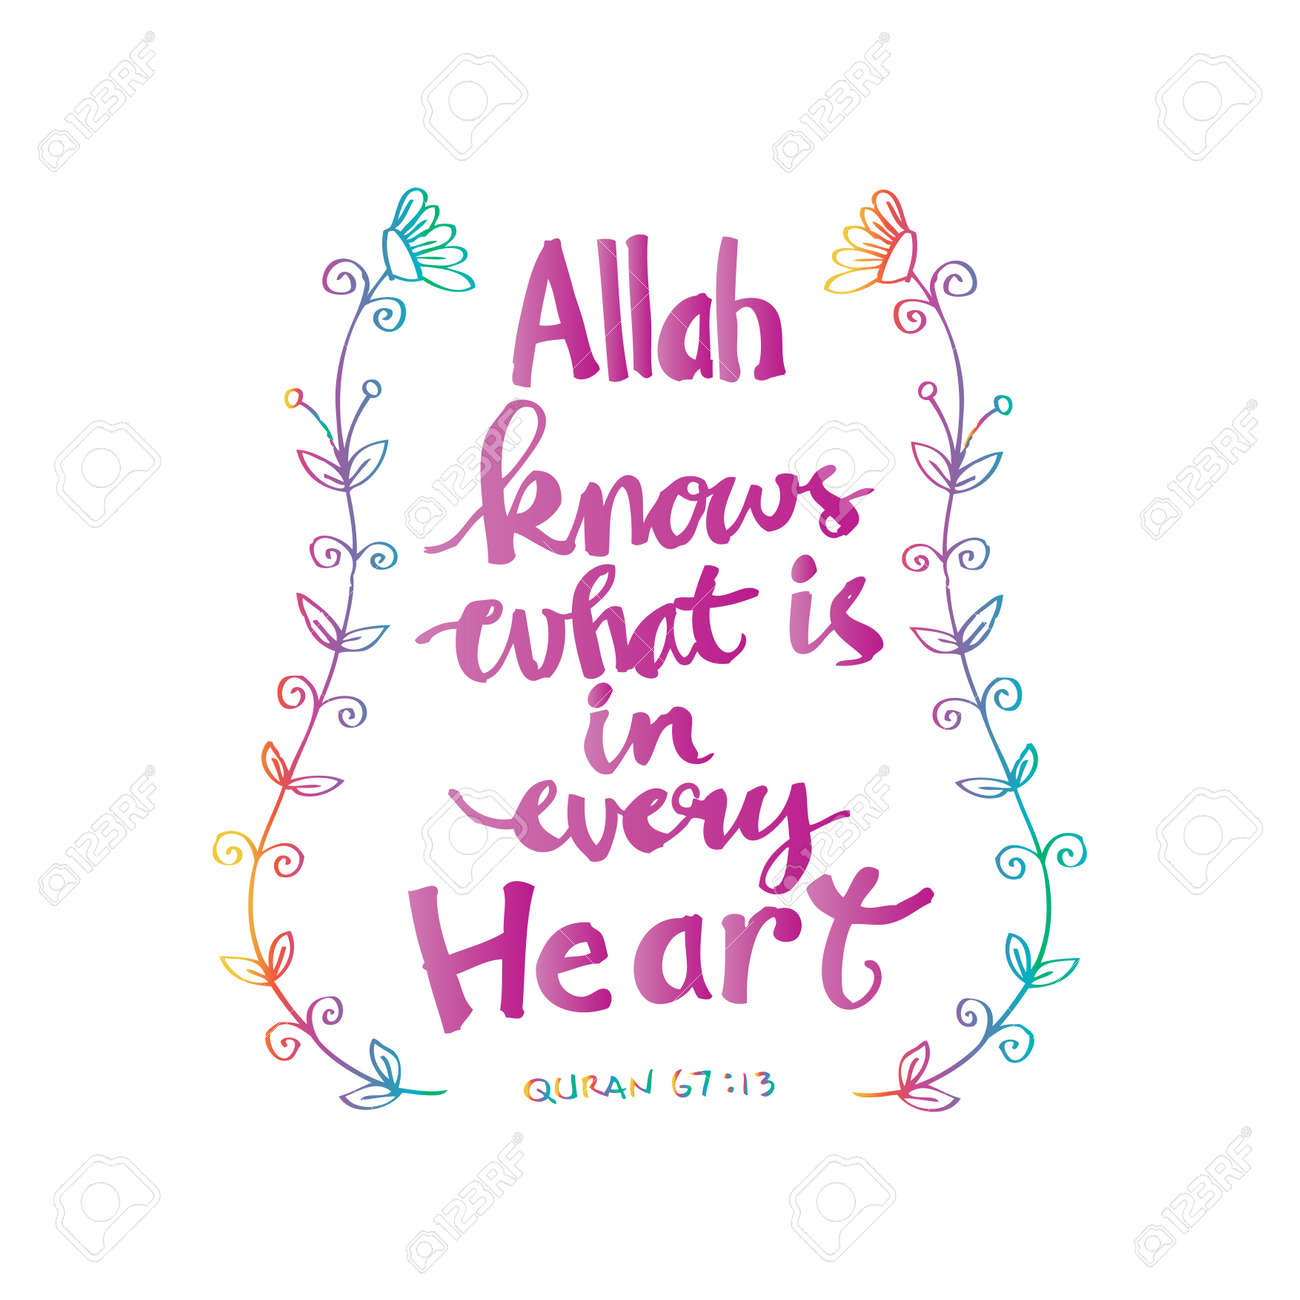 Quotes Quran Allah Knows What Is In Every Heartislamic Quran Quotes Royalty